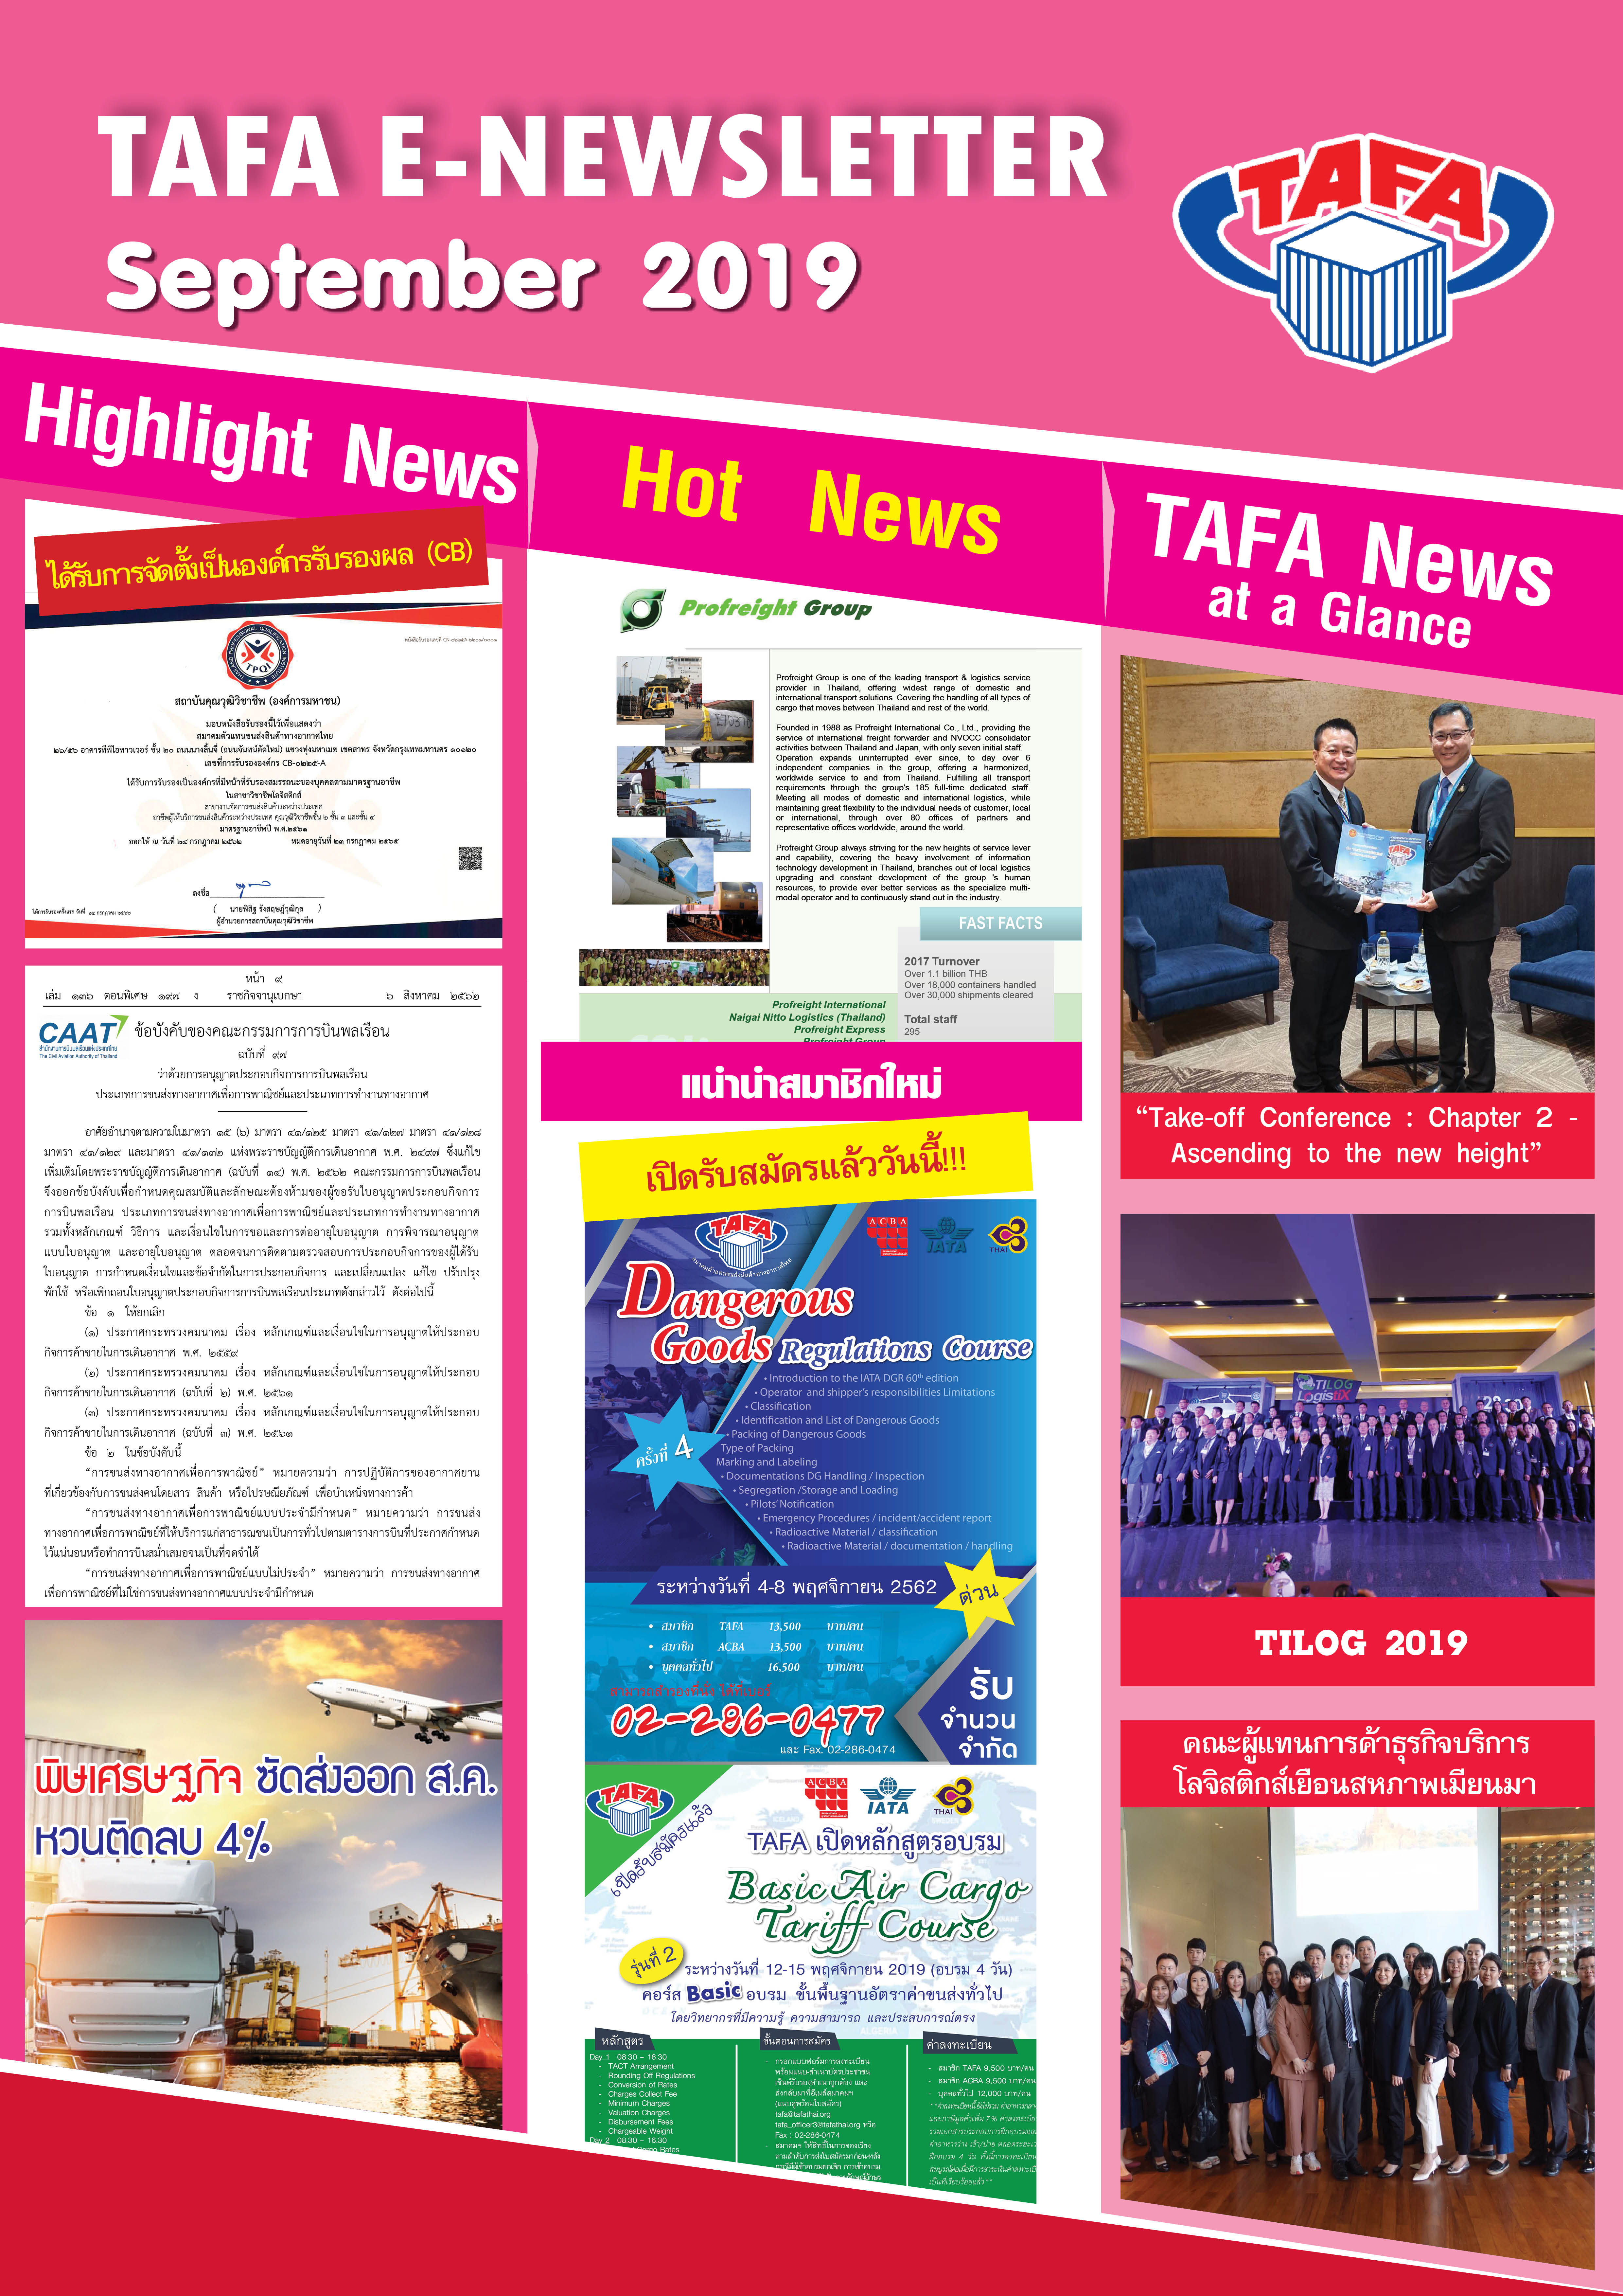 TAFA Newsletter, Issue 9 of September 2019